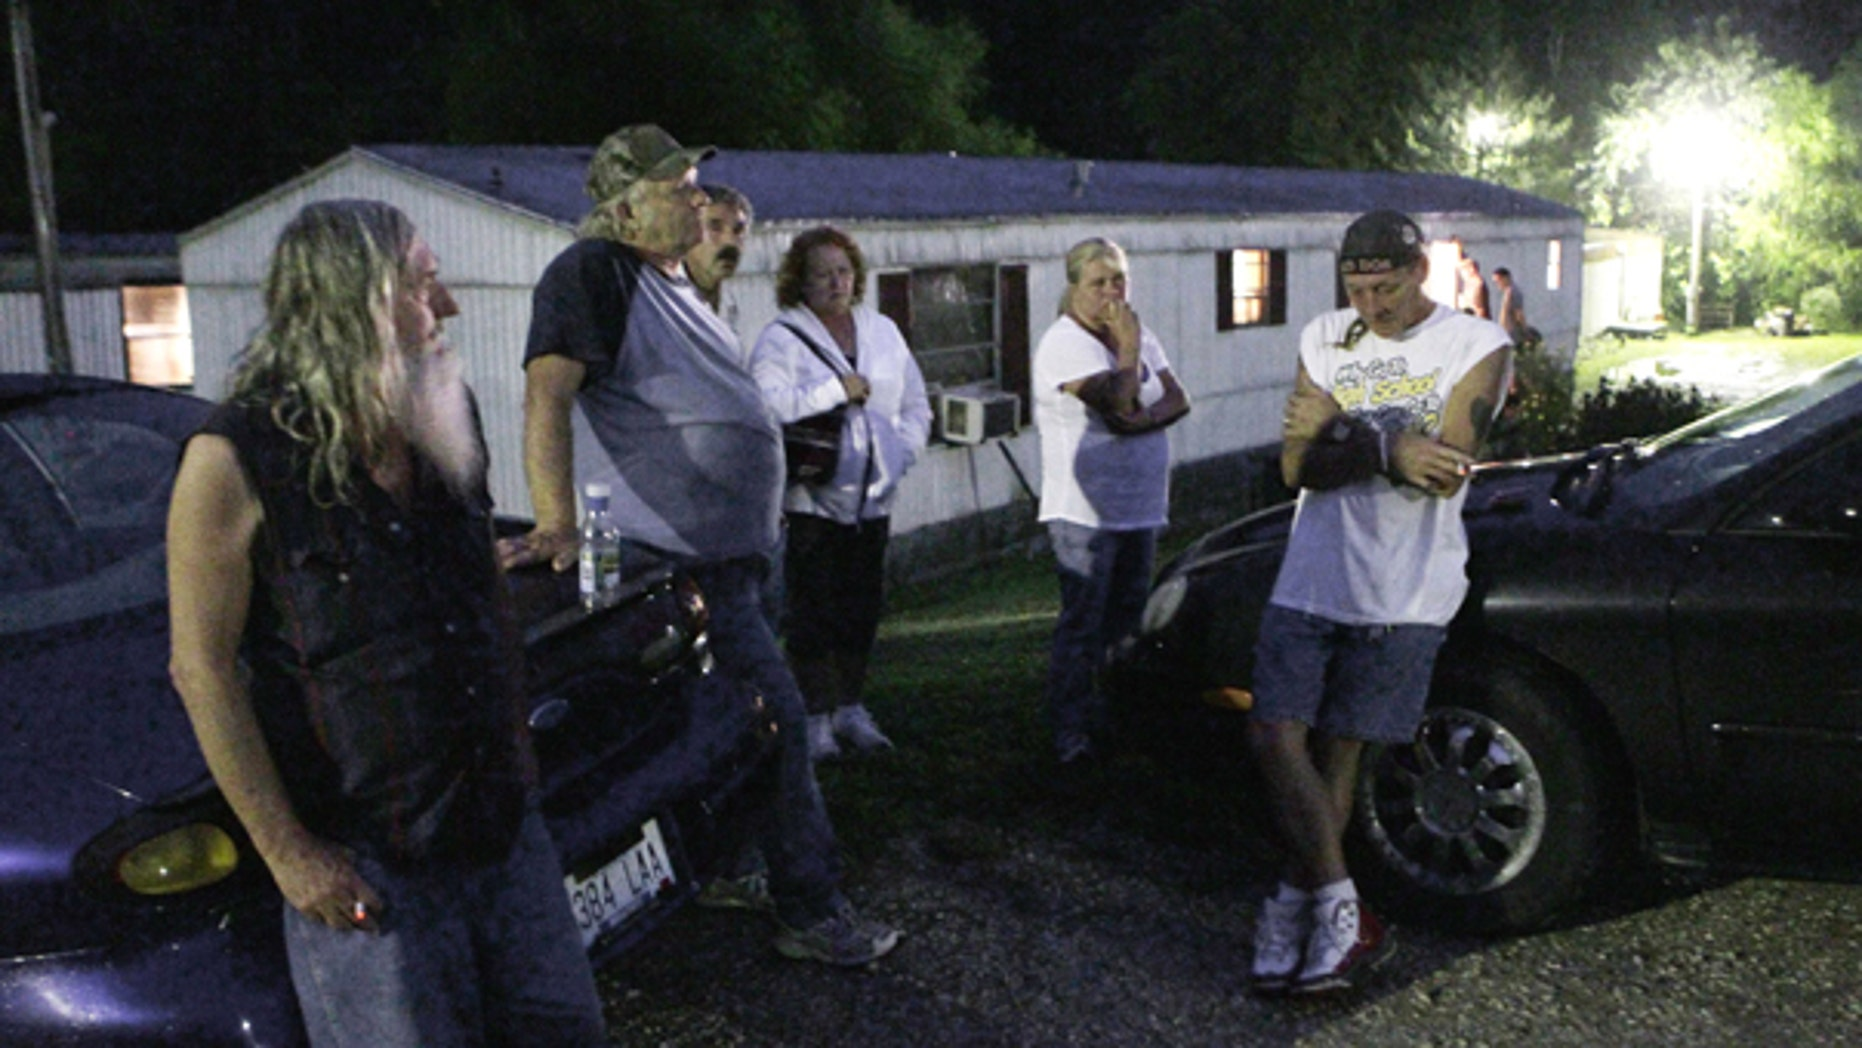 Sept. 11: Friends and neighbors gather with J.D. Kilborn, right, outside the trailer where Stanley Neace killed Kilborn's wife Tammy in Jackson, Ky. Neace killed five people before killing himself.